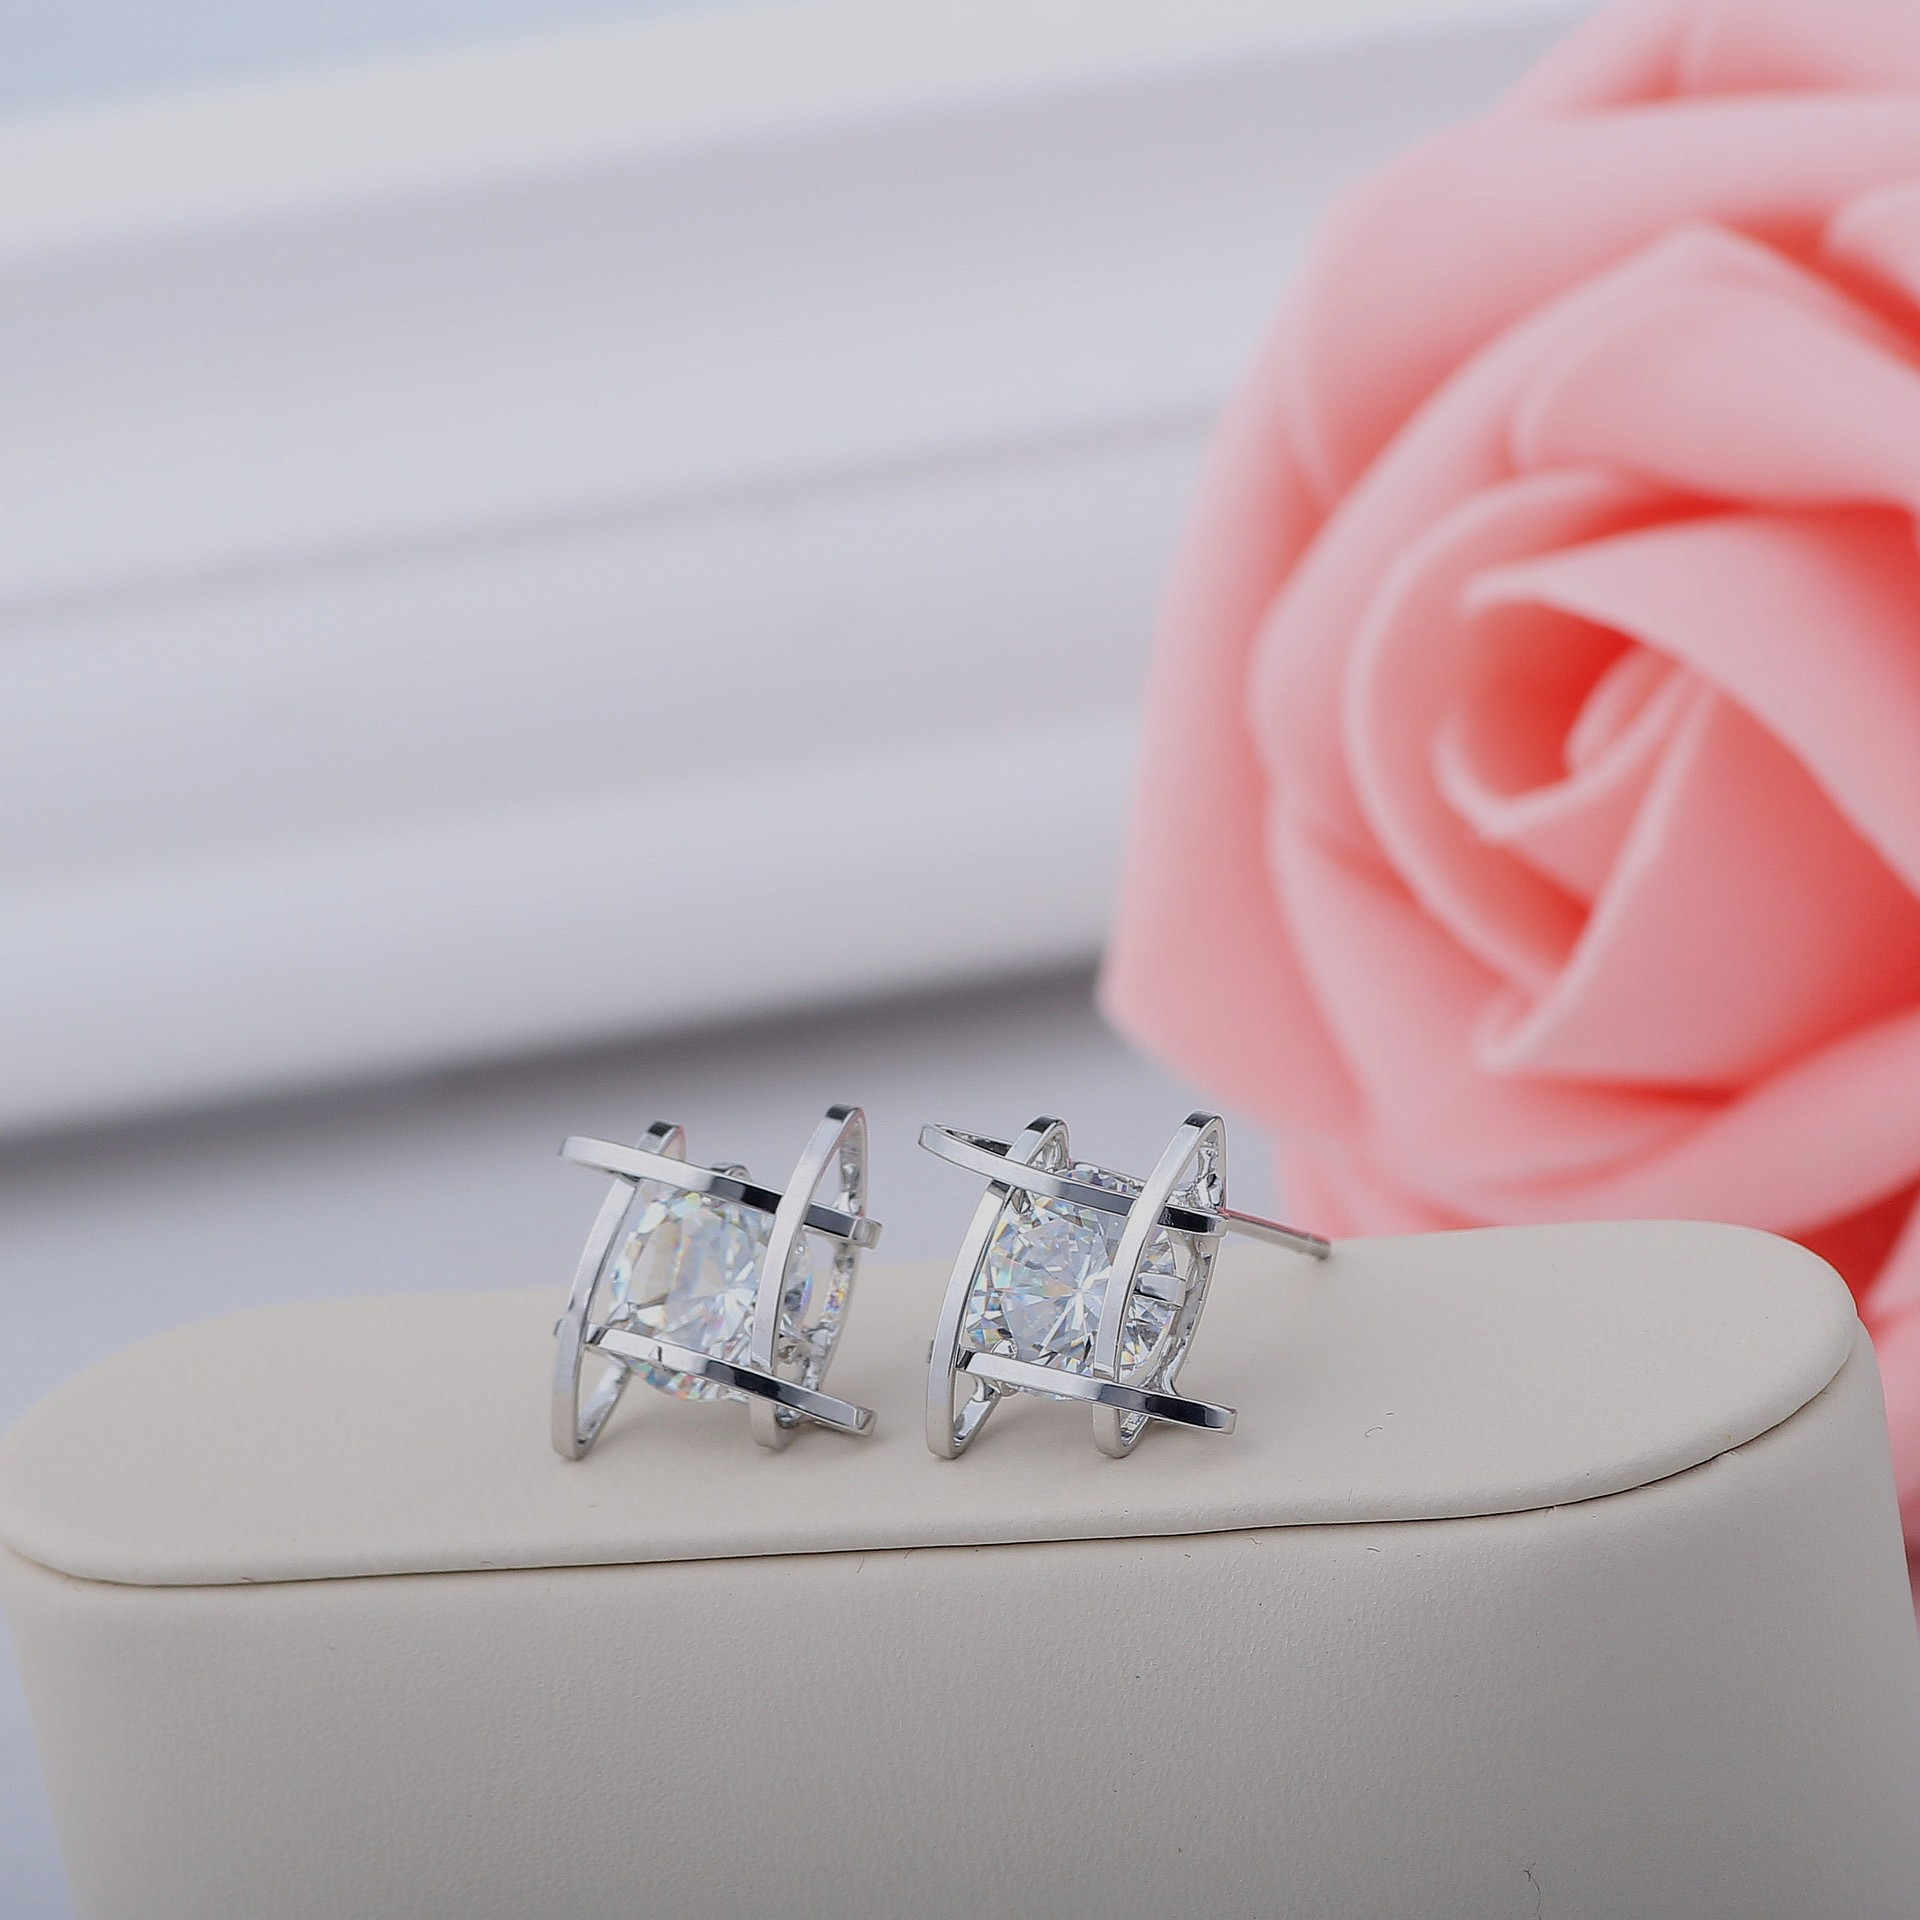 H61c9d1bb993445f787c5cacc7ee23d72g - Women's earrings Europe and the new jewelry geometric hollow square triangle zircon earrings fashion banquet jewelry